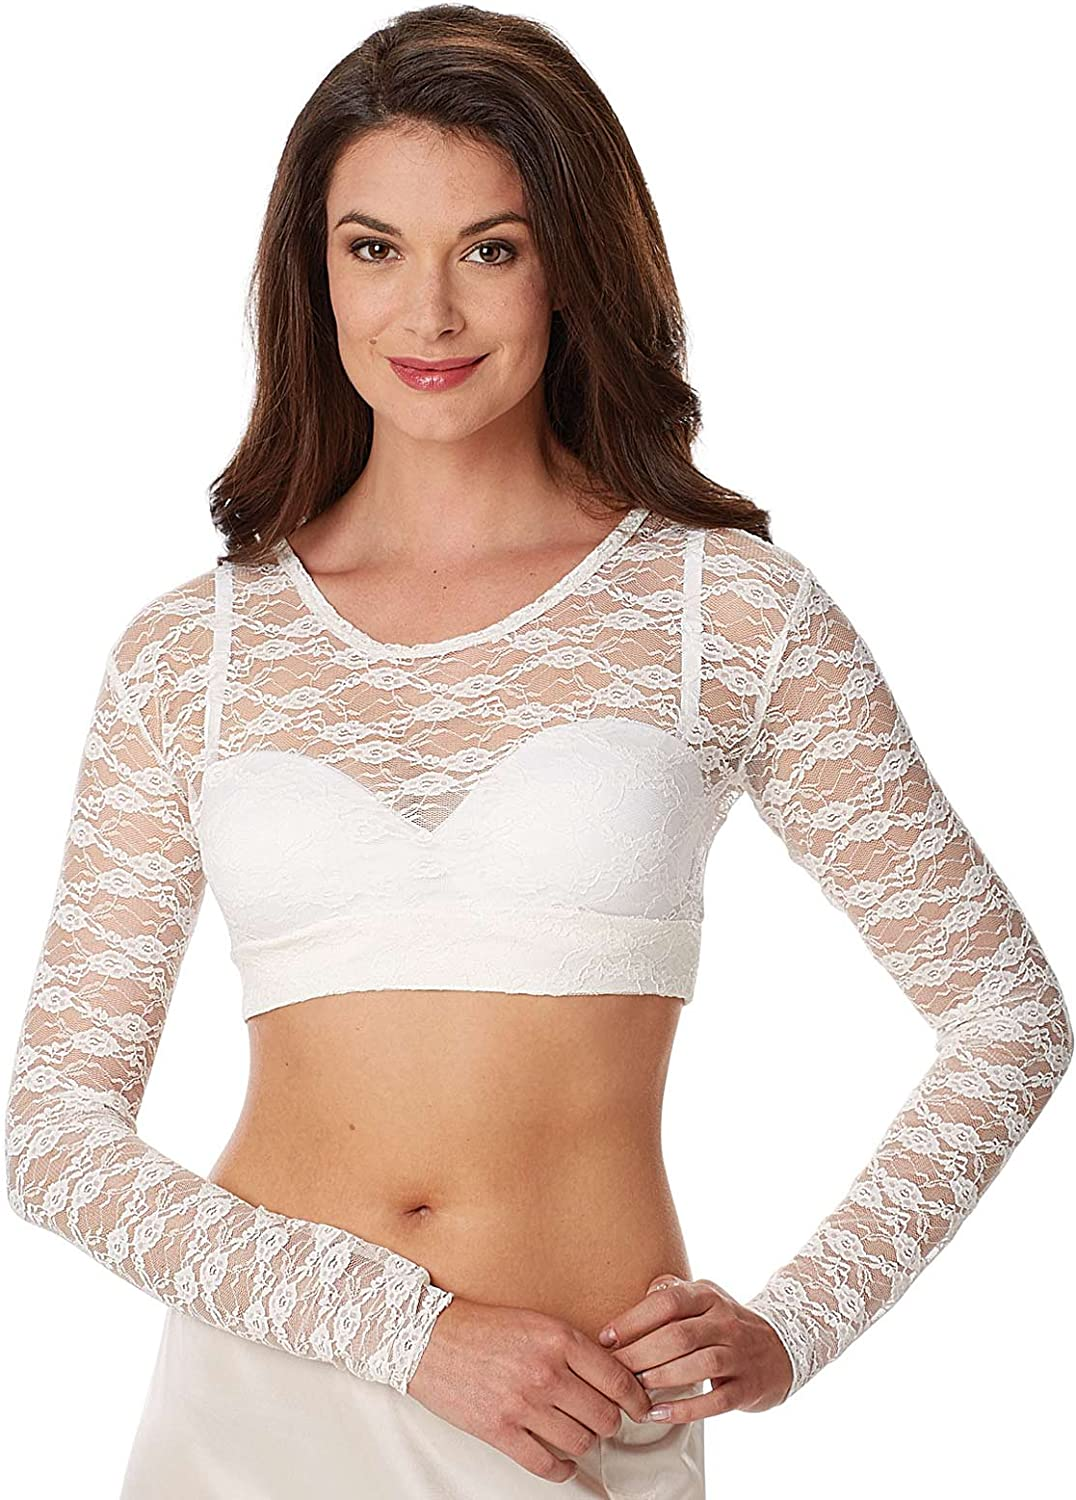 White Size Large Global TV Concepts Lace Camisole Top